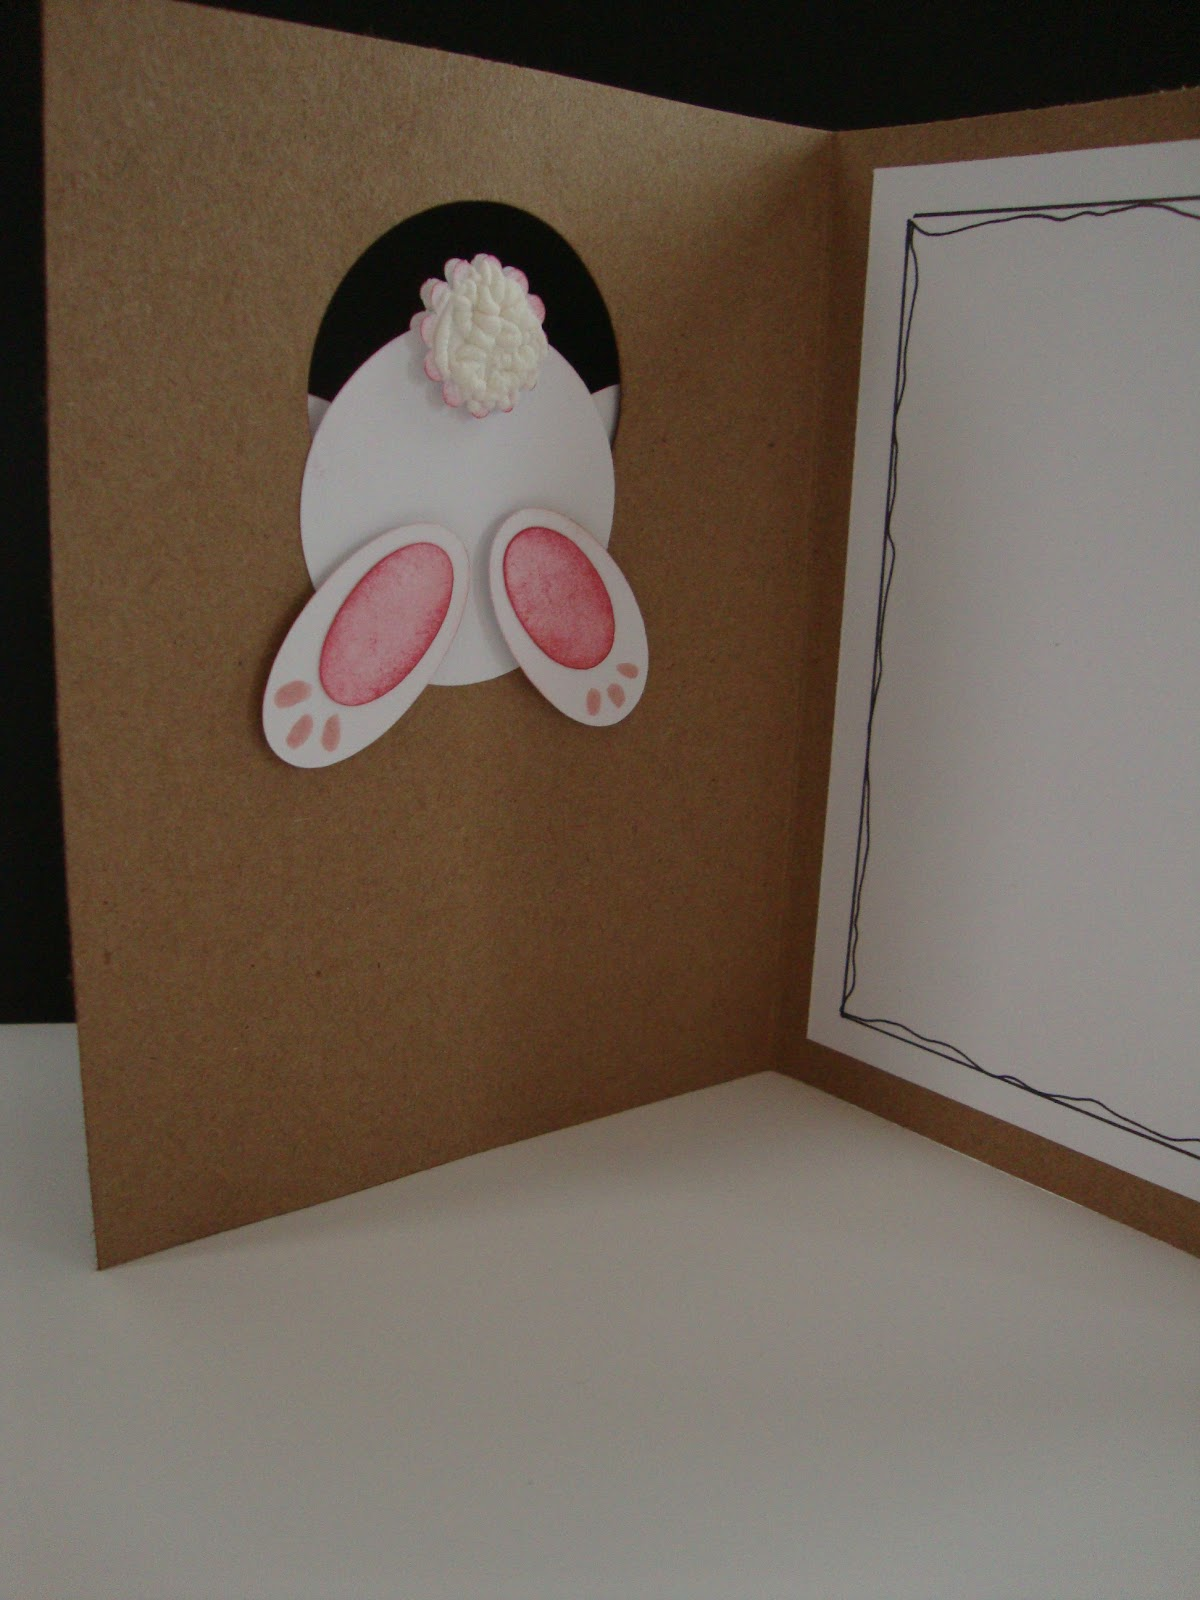 gr8scraps: EASTER BUNNY CARD-made with the cricut!